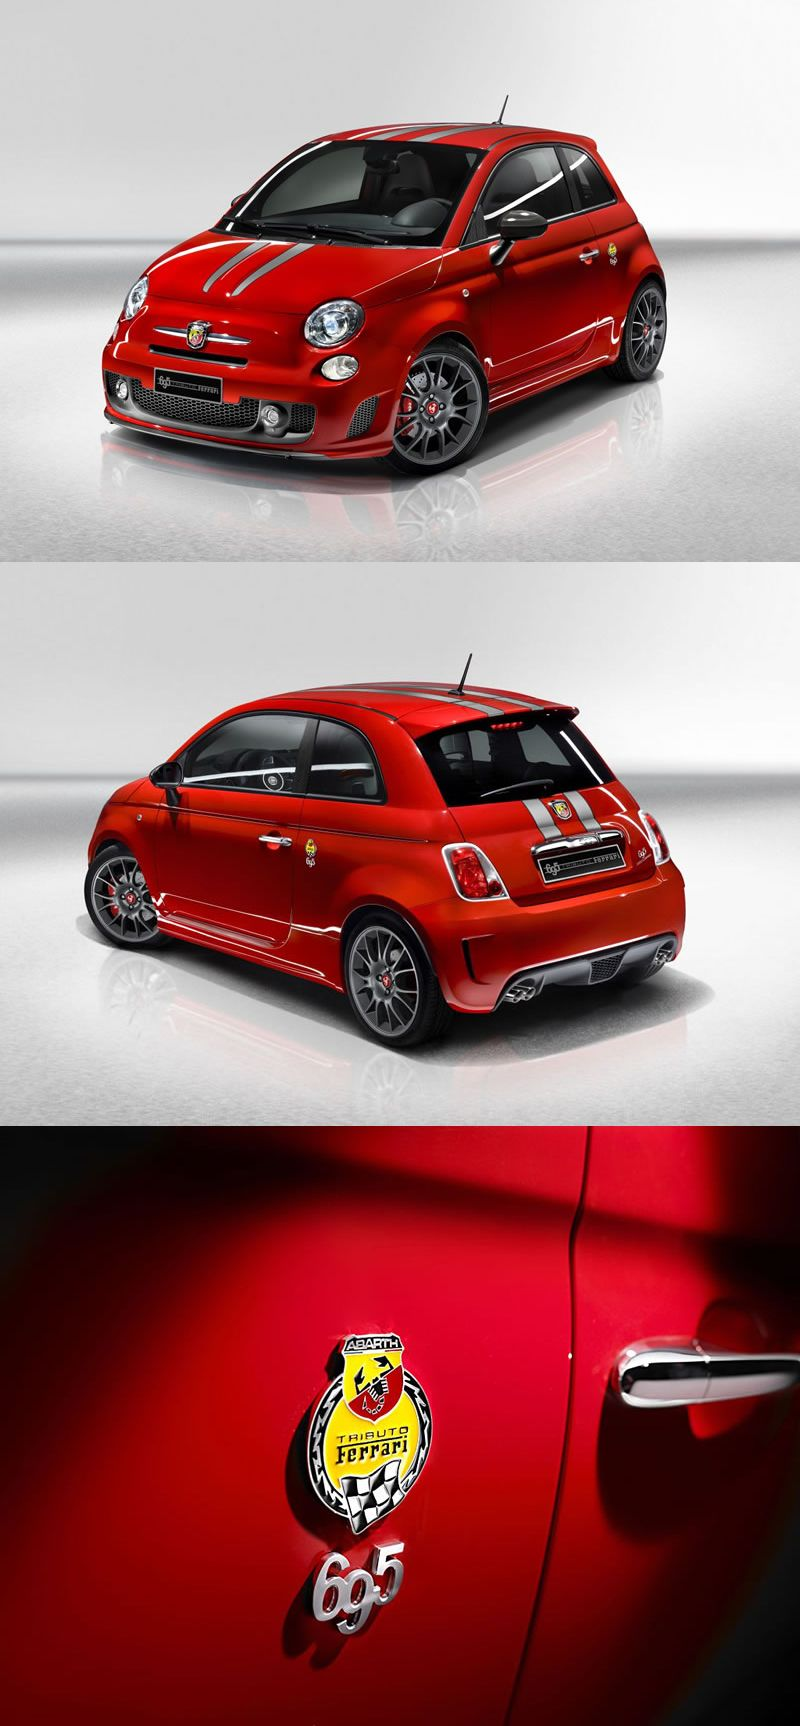 Sacs Fiat 500 Abarth 695 Tributo Ferrari Bike And Car Fiat